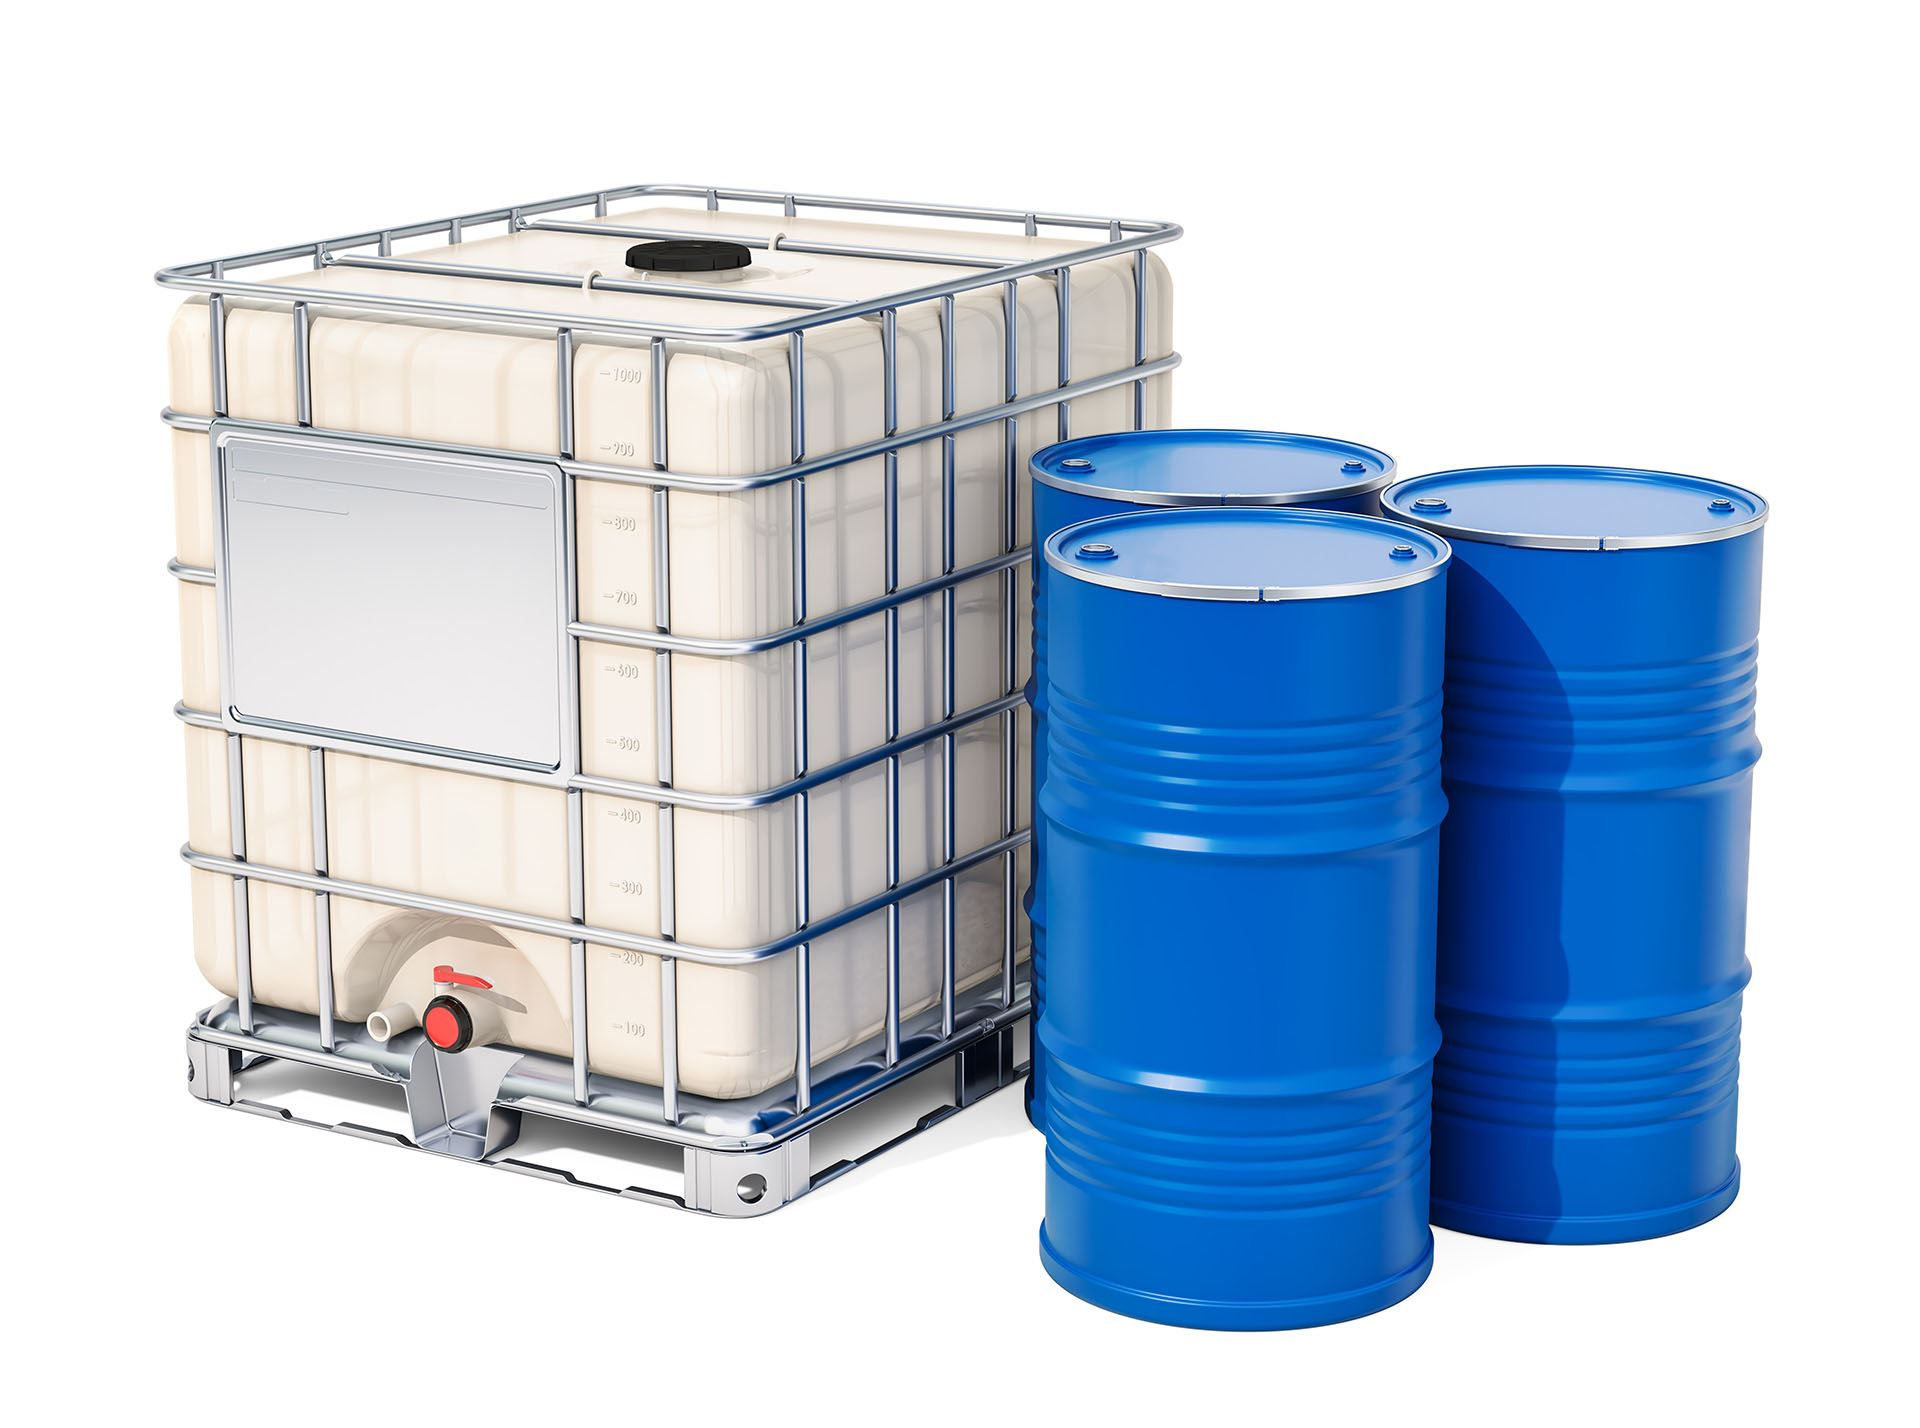 A large number of large-volume containers must be tested for leaks